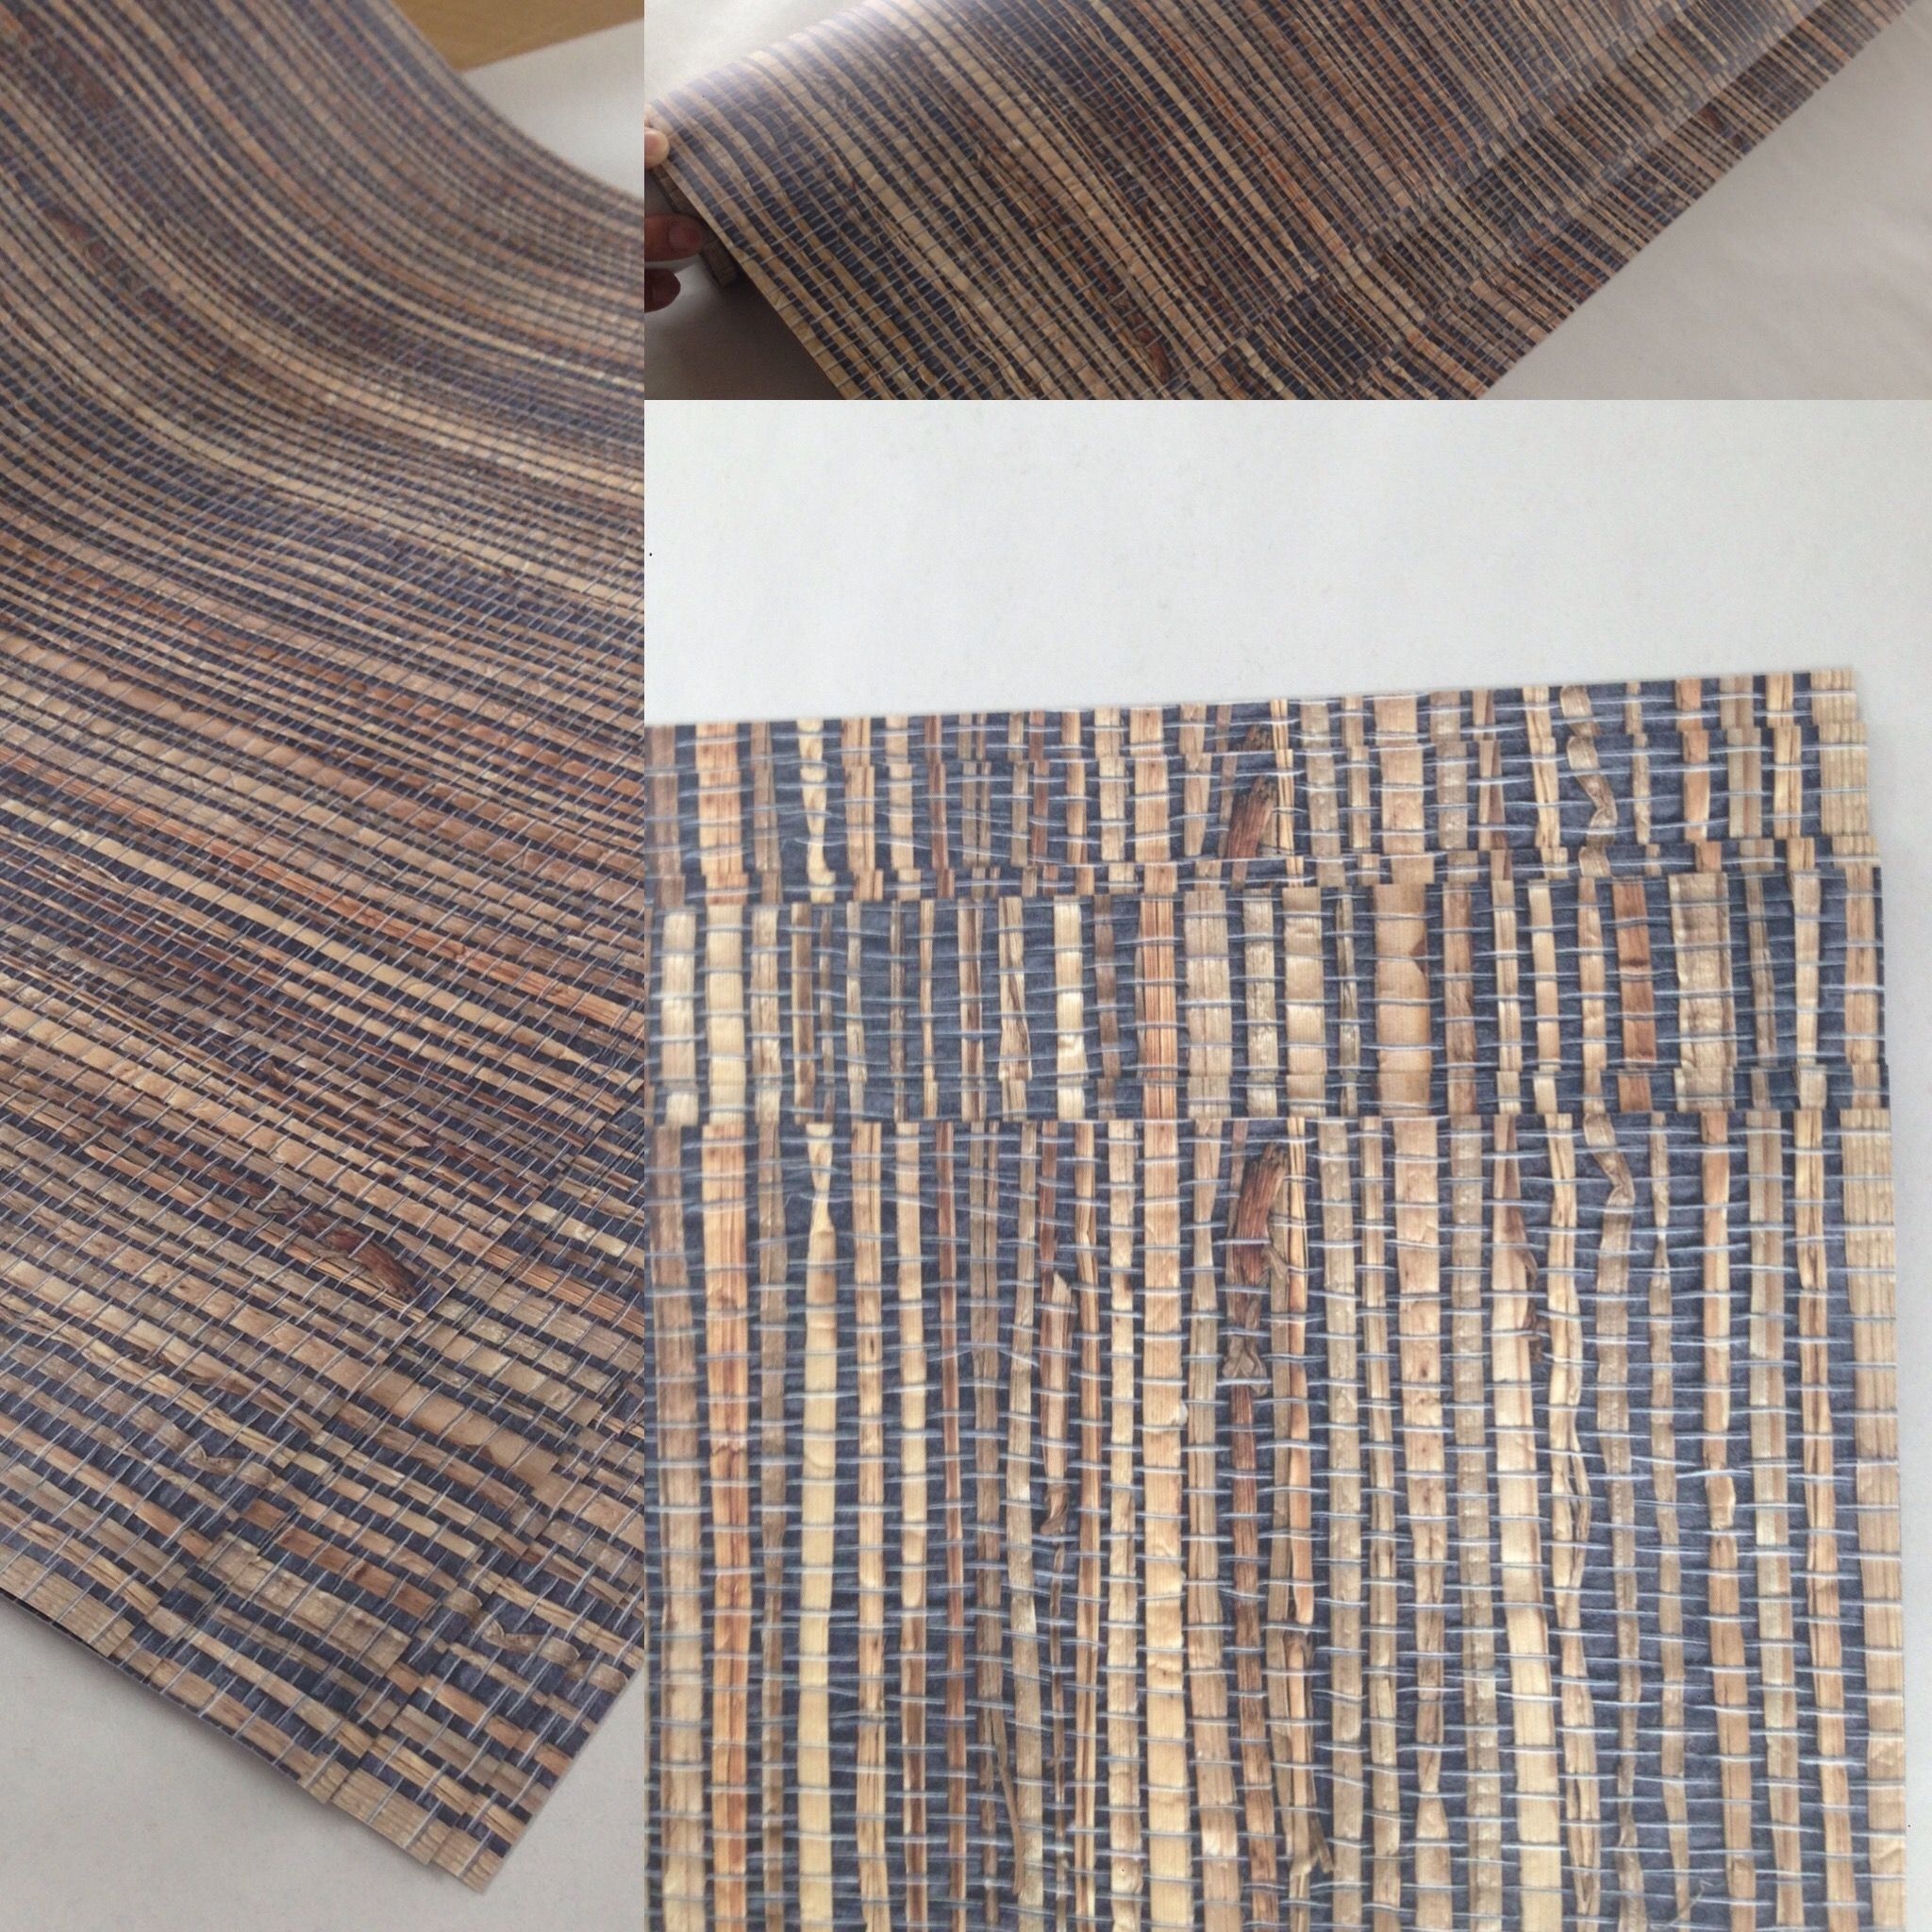 Grasscloth removable wallpaper, custom made by BC Magic